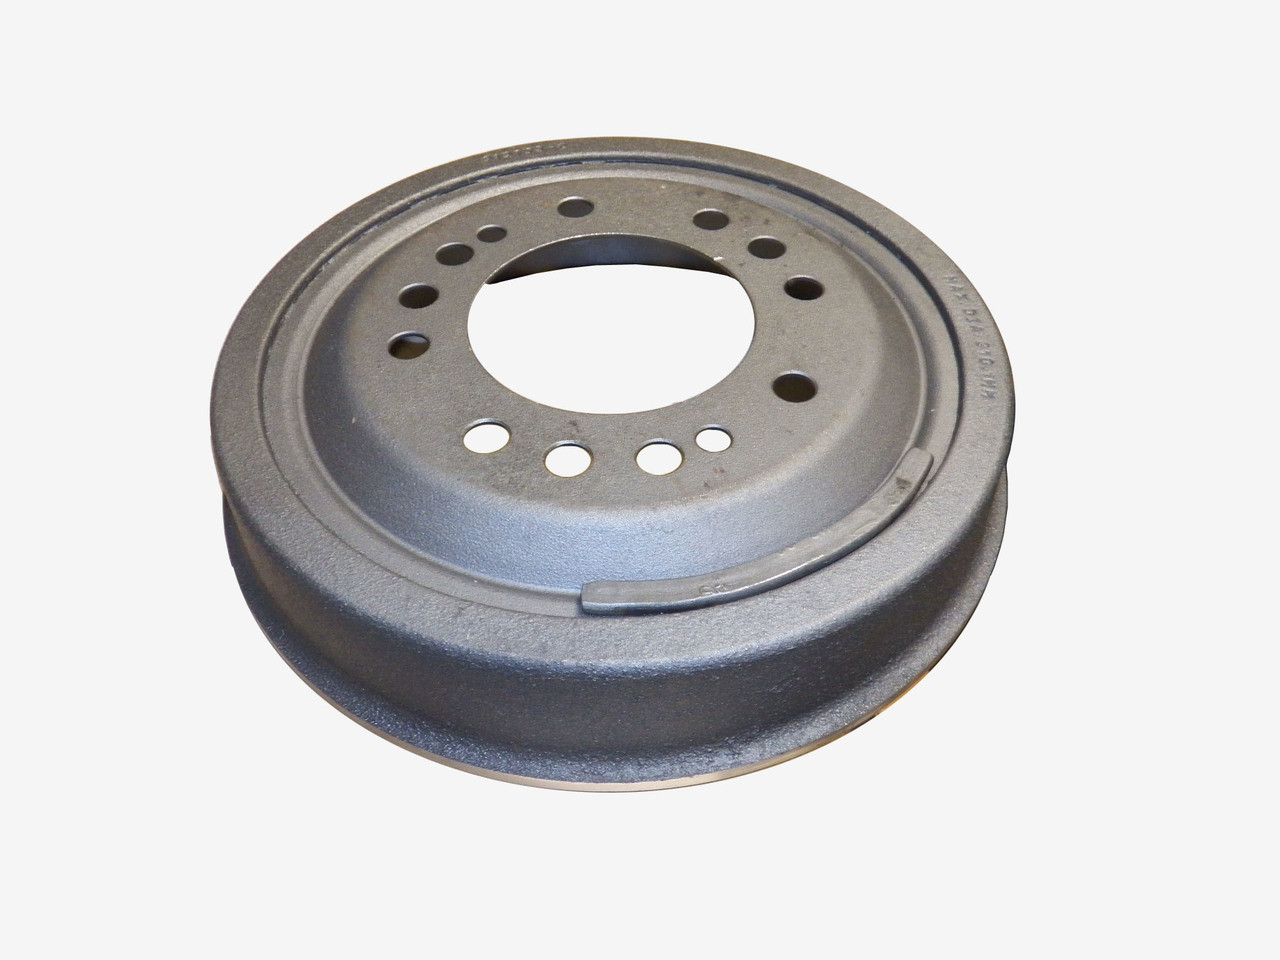 Qu50760 12 1 8 4x4 Front Brake Drum For Vintage Ford F250 Gm K20 1971 Highboy